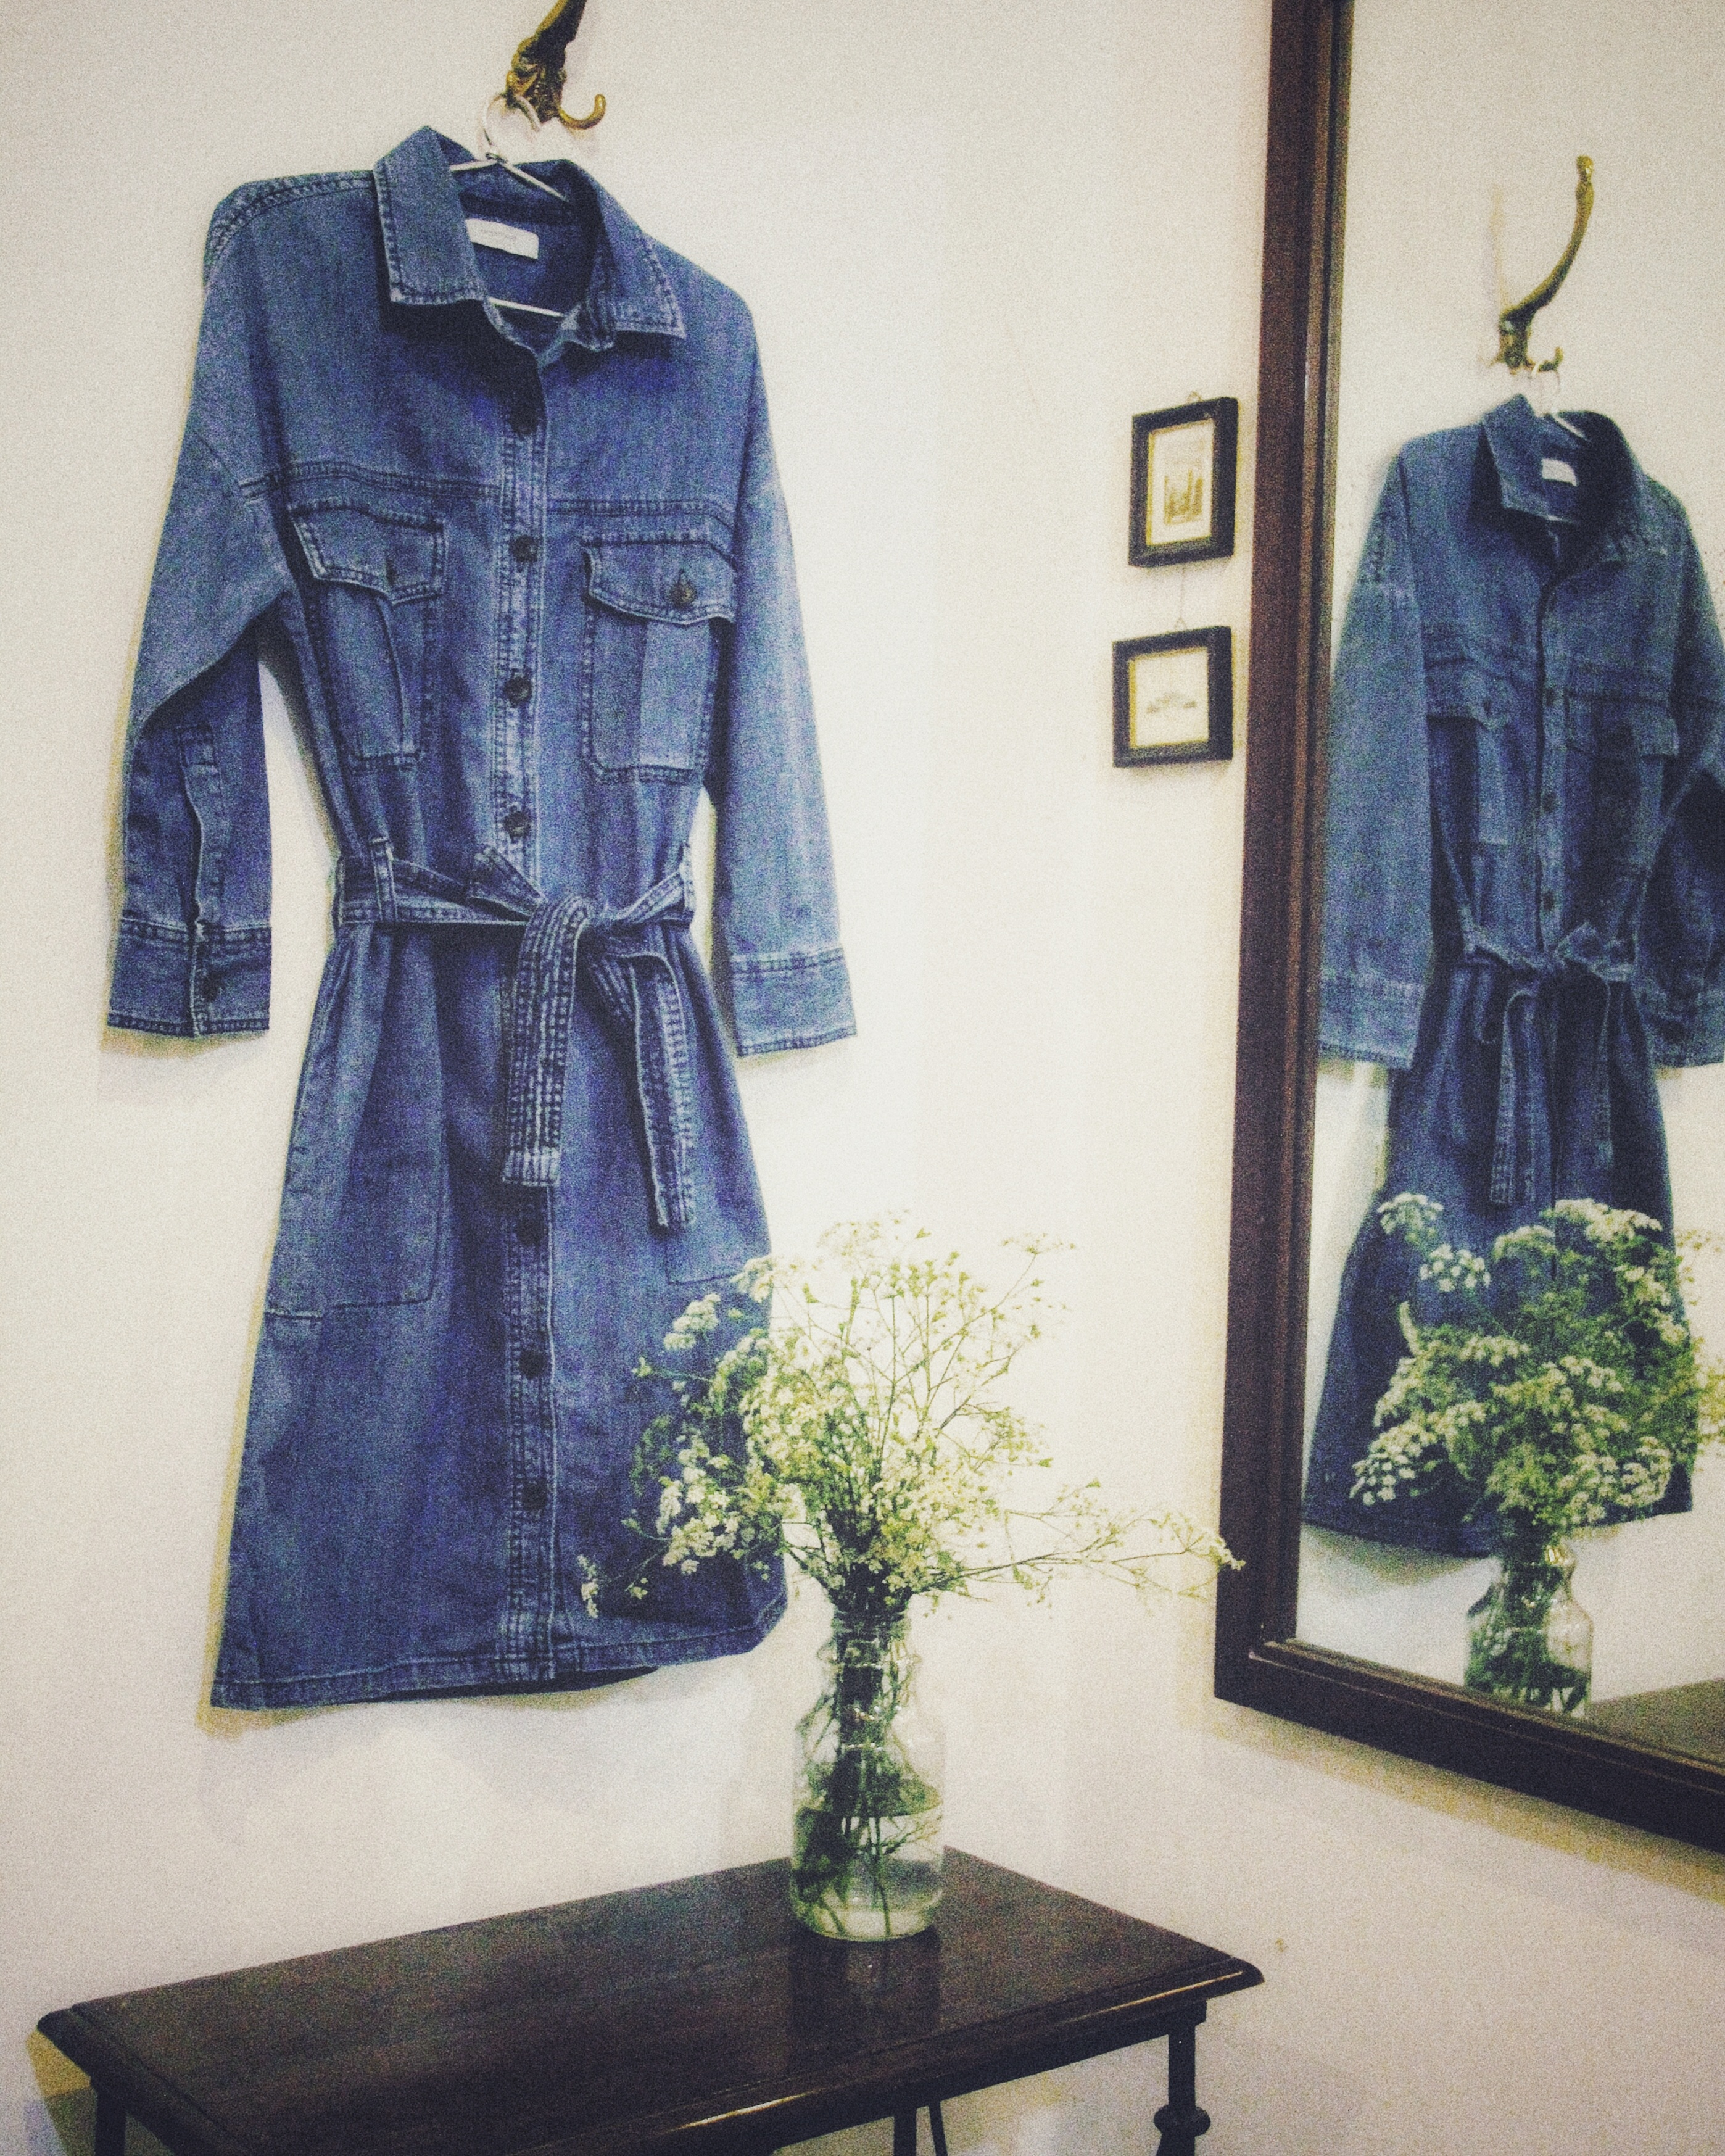 The transformation of a denim dress into an overcoat